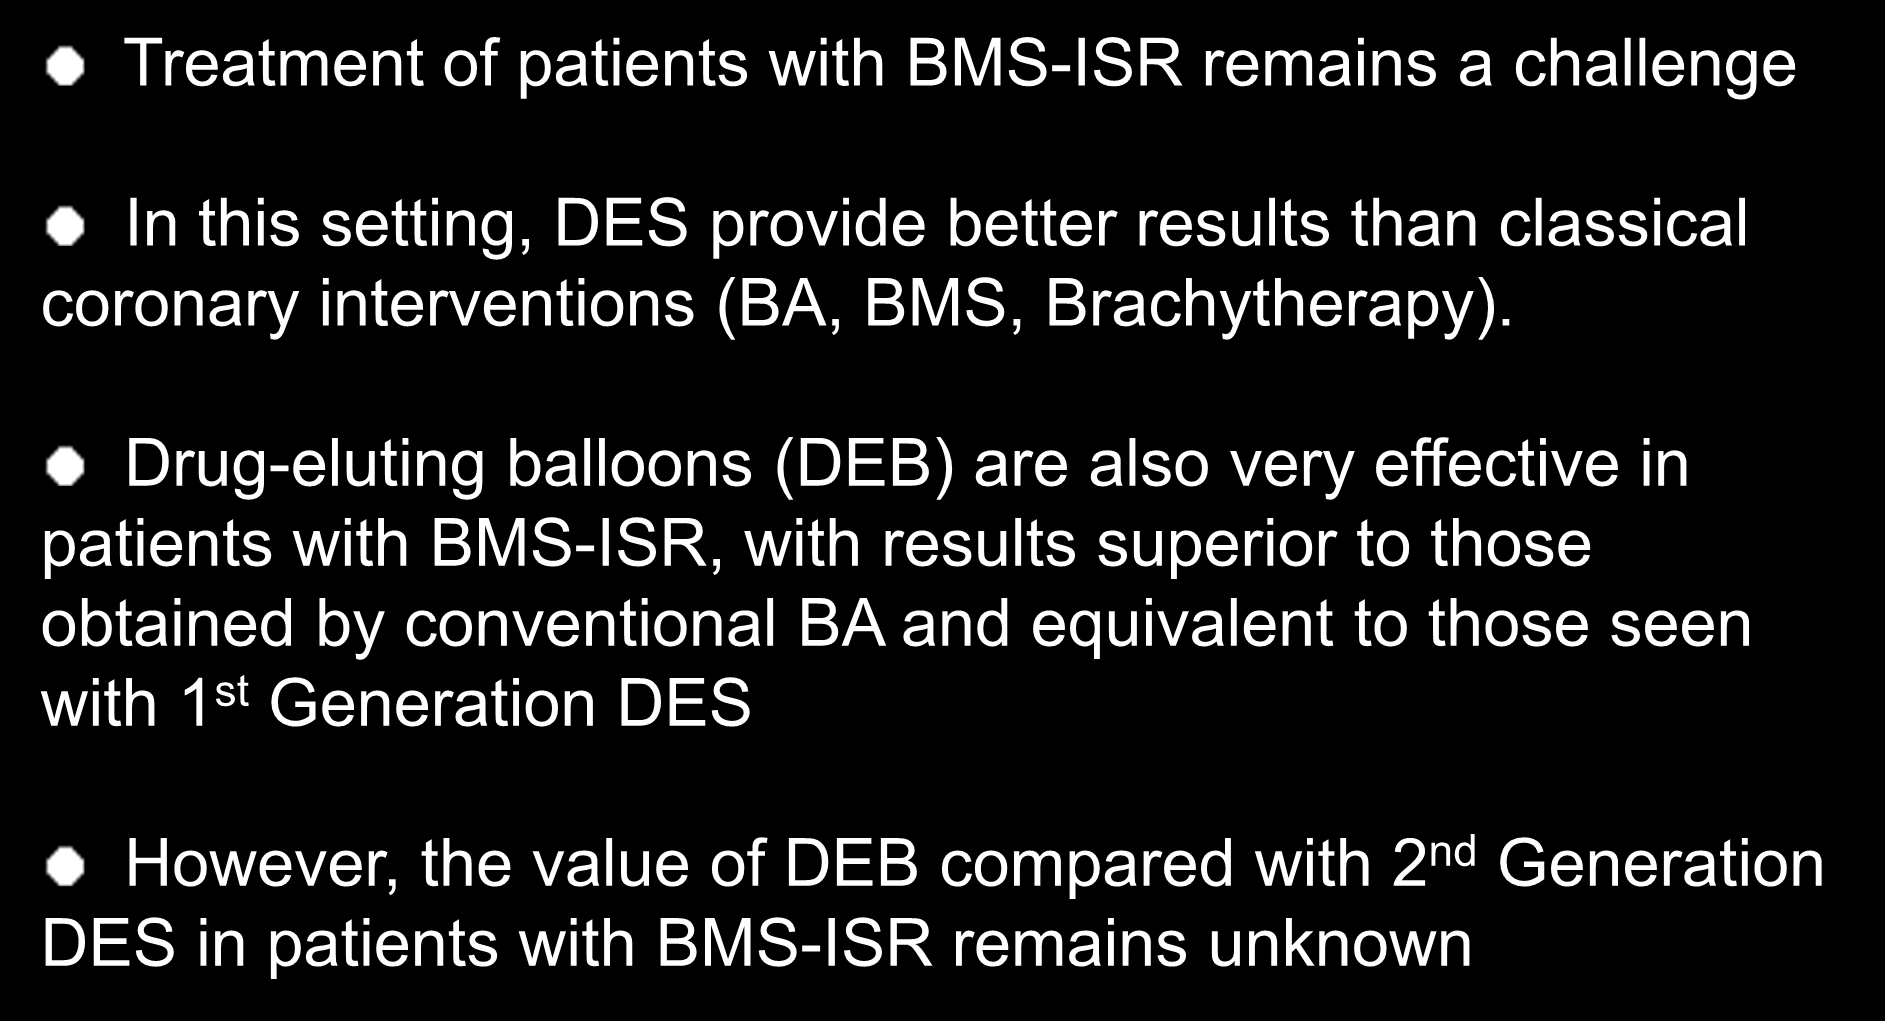 Background: Treatment of patients with BMS-ISR remains a challenge In this setting, DES provide better results than classical coronary interventions (BA, BMS, Brachytherapy).